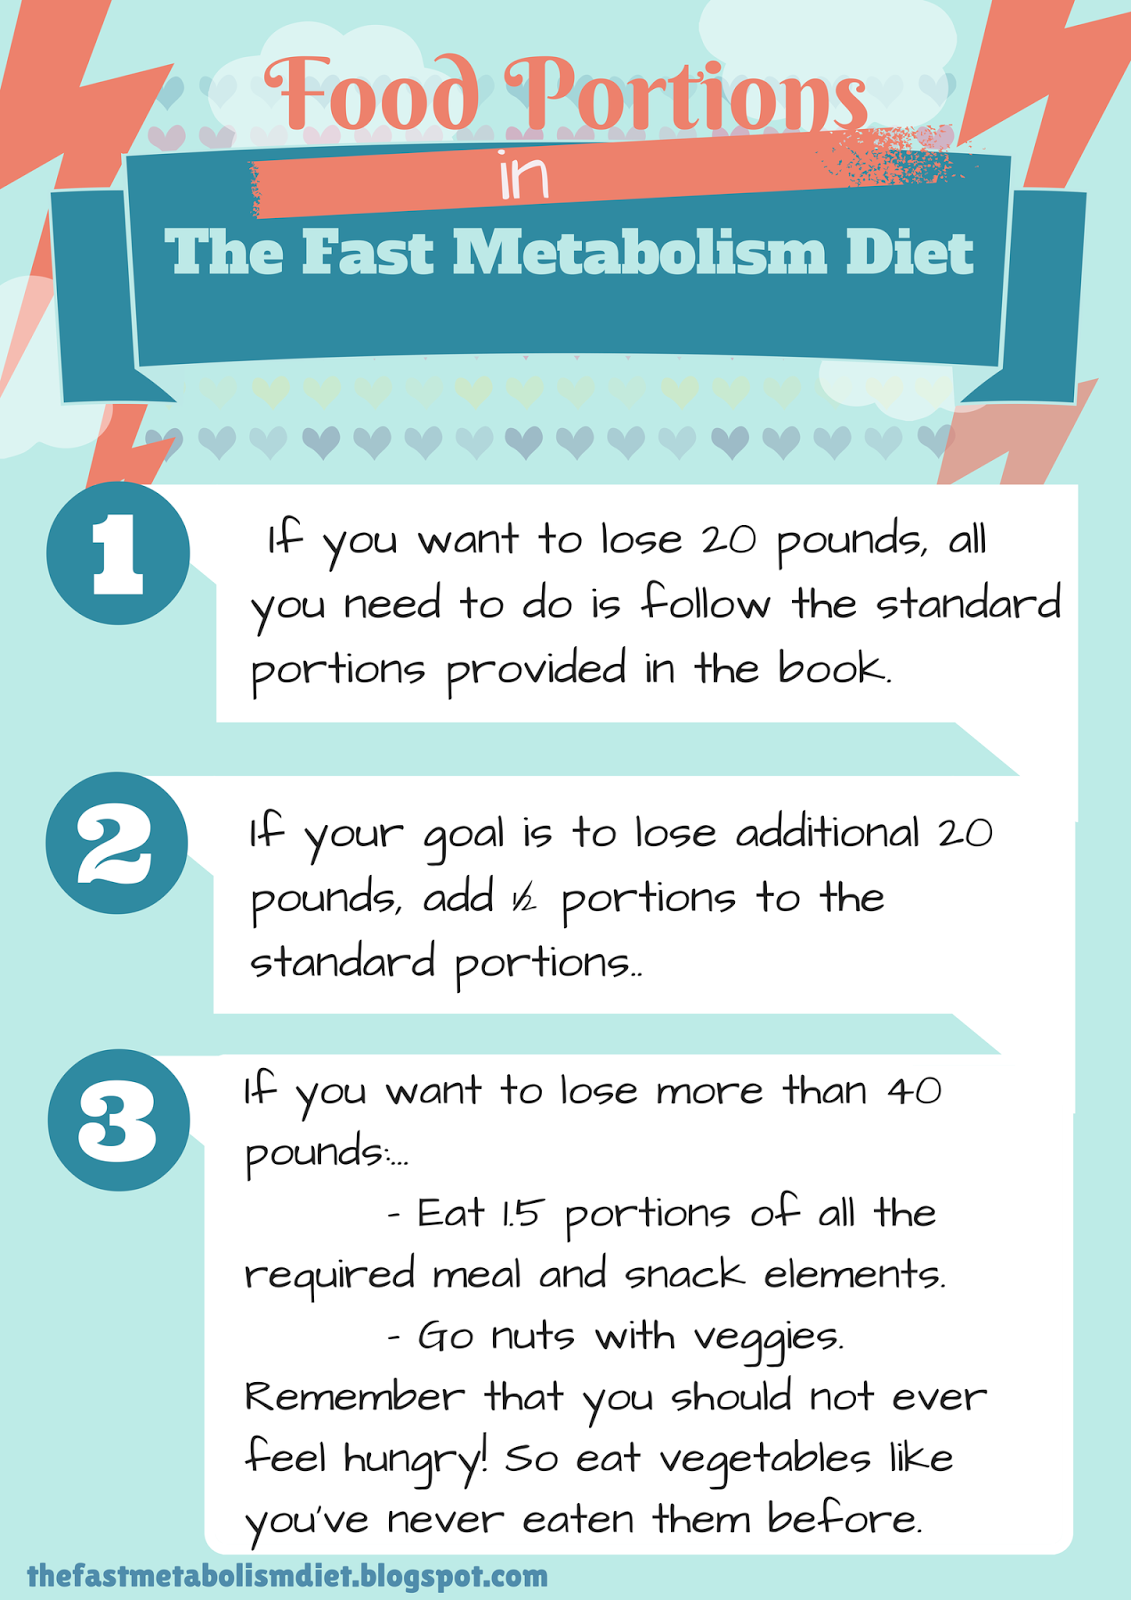 Slideshow: 10 Ways to Boost Your Metabolism - WebMD